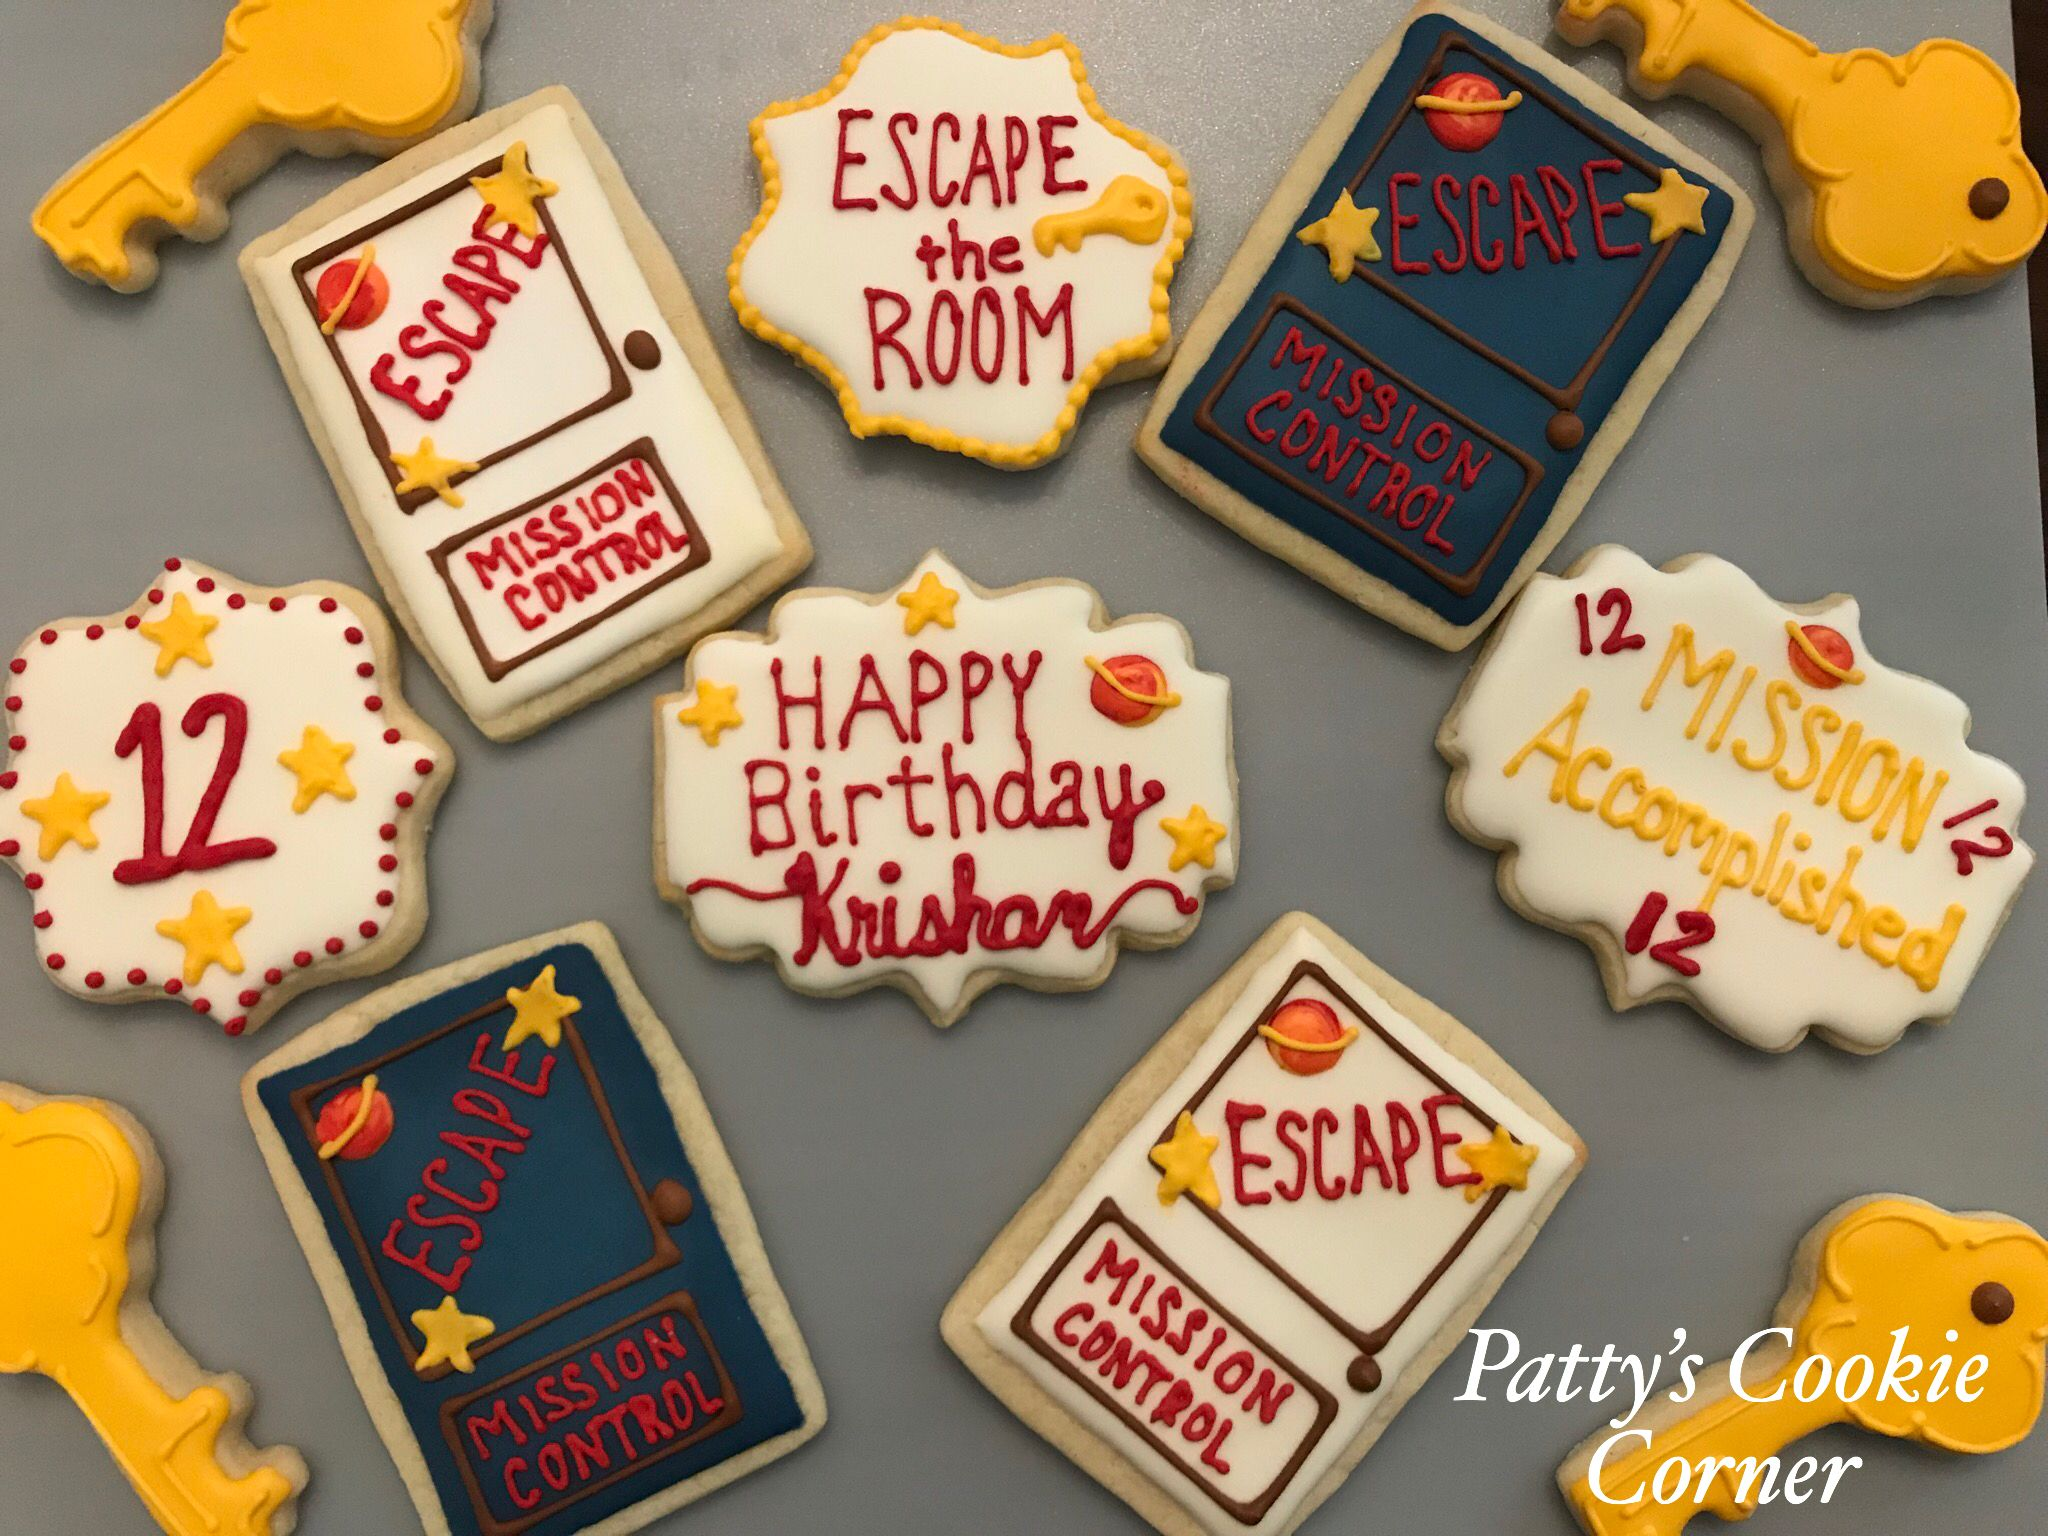 Escape The Room Cookies Mission Control Cookies Pattyscookiecorner Escapetheroomcookies Missioncontrolc Birthday Party Food Birthday Cookies Sleepover Food